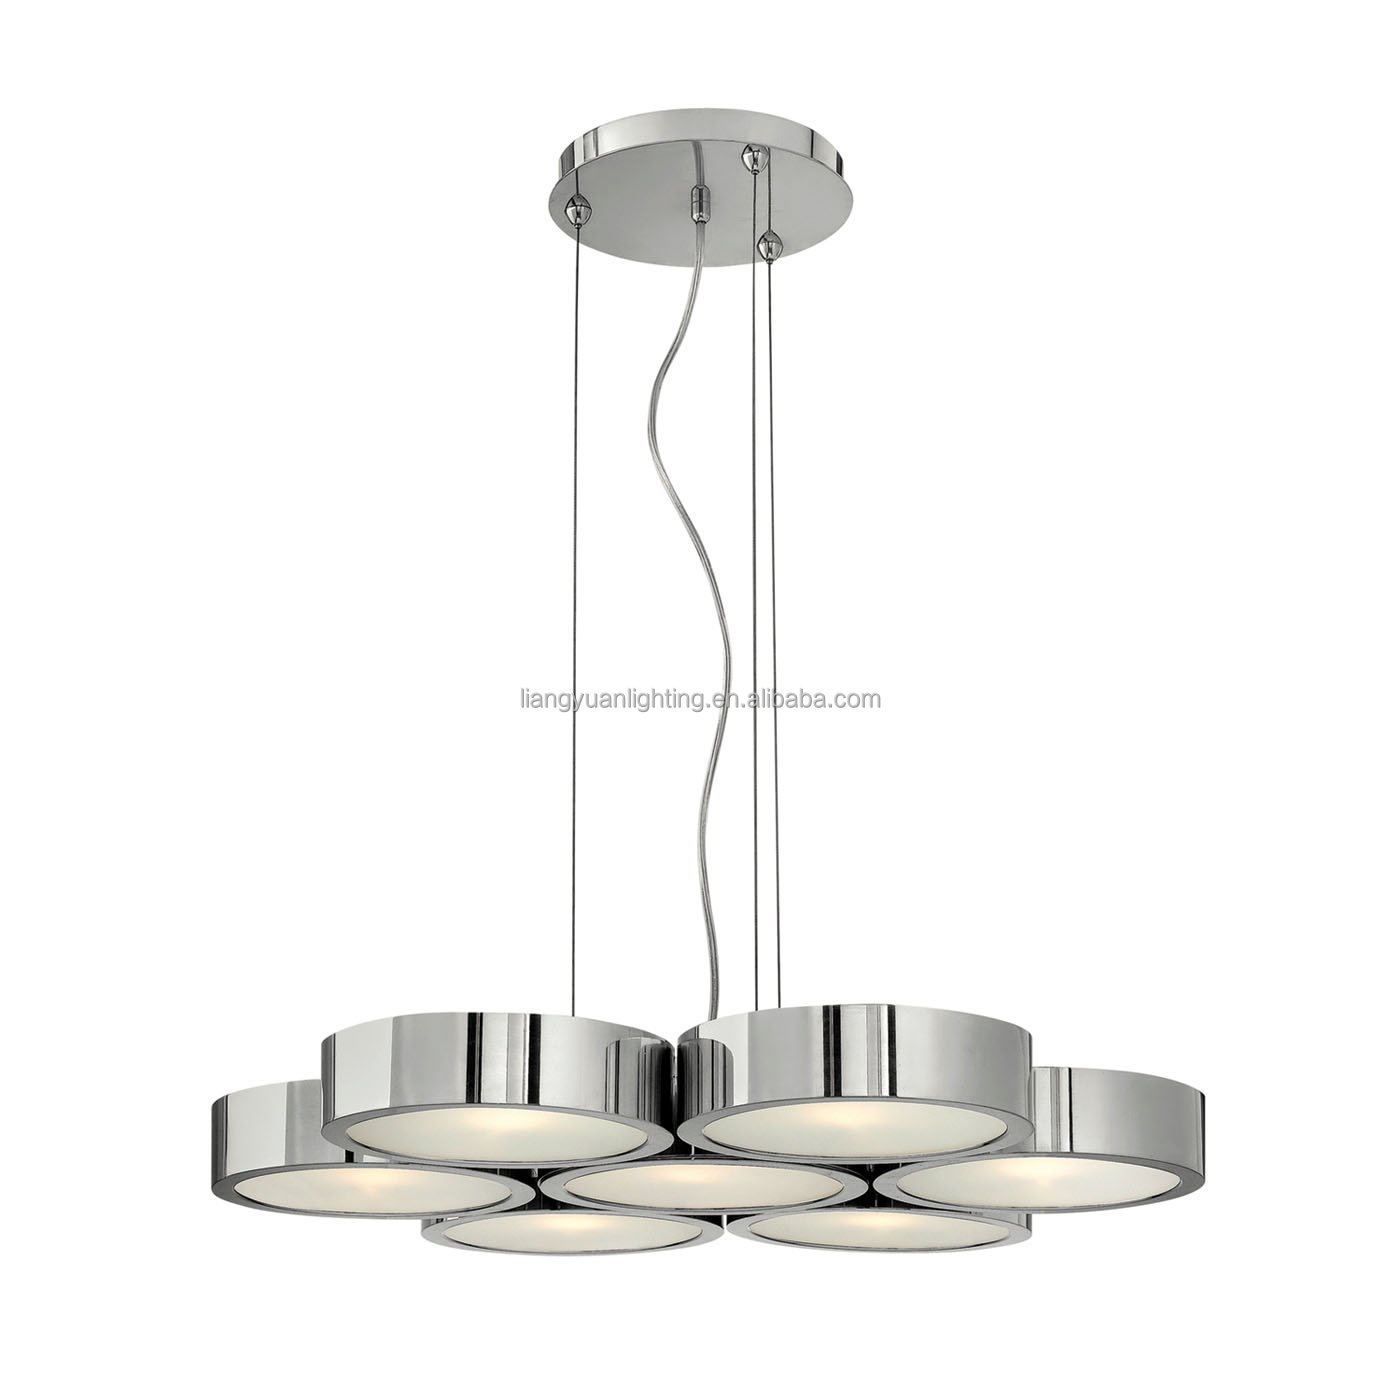 2016 Hot Sale Aluminium Pendant light for Guest Room Hallway Bedroom